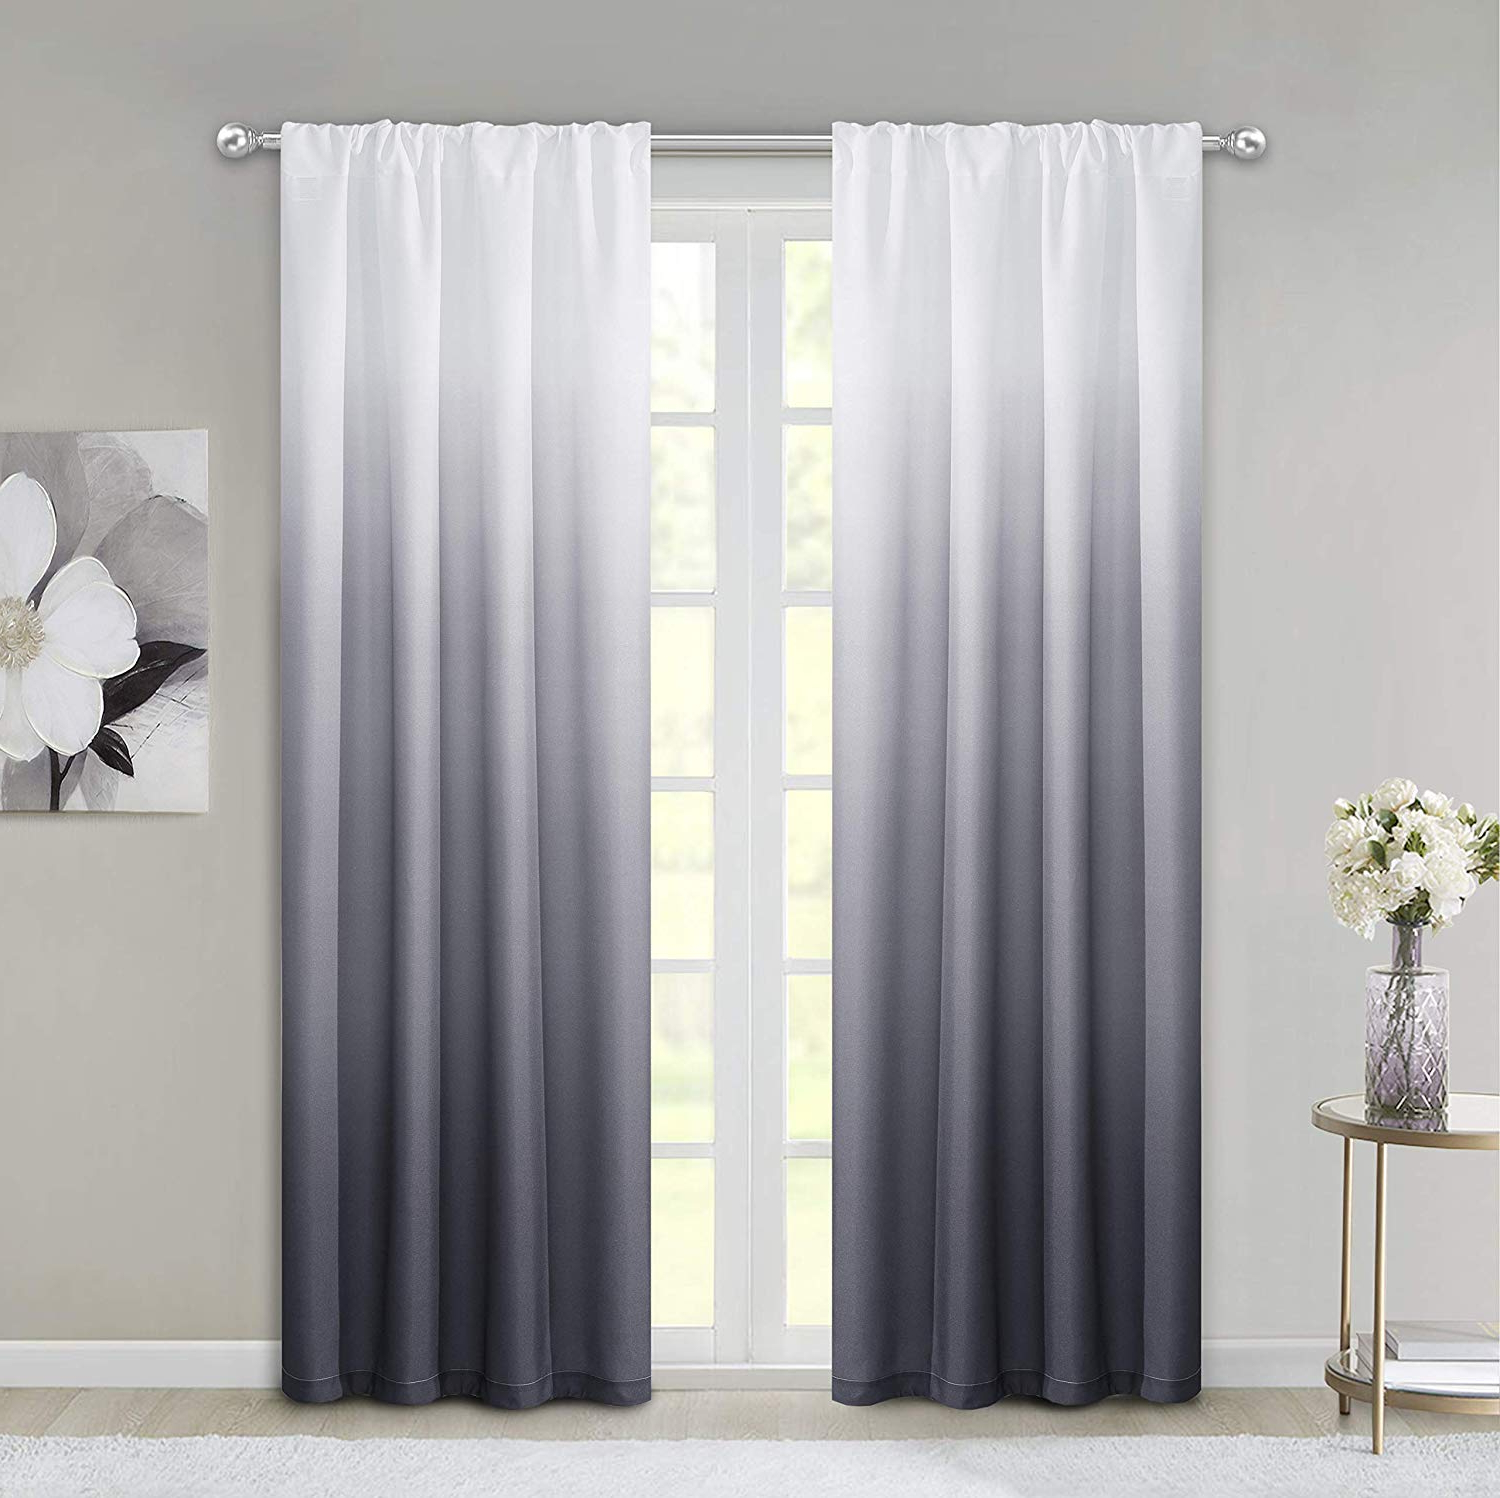 "2020 Ombre Embroidery Curtain Panels With Dainty Home Ombre Woven Shades Of Color Rod Pocket Curtain Panel Pair  Complete Set Of 2, 40"" Wide X 84"" Long Each, Gradient White To Black (View 1 of 20)"